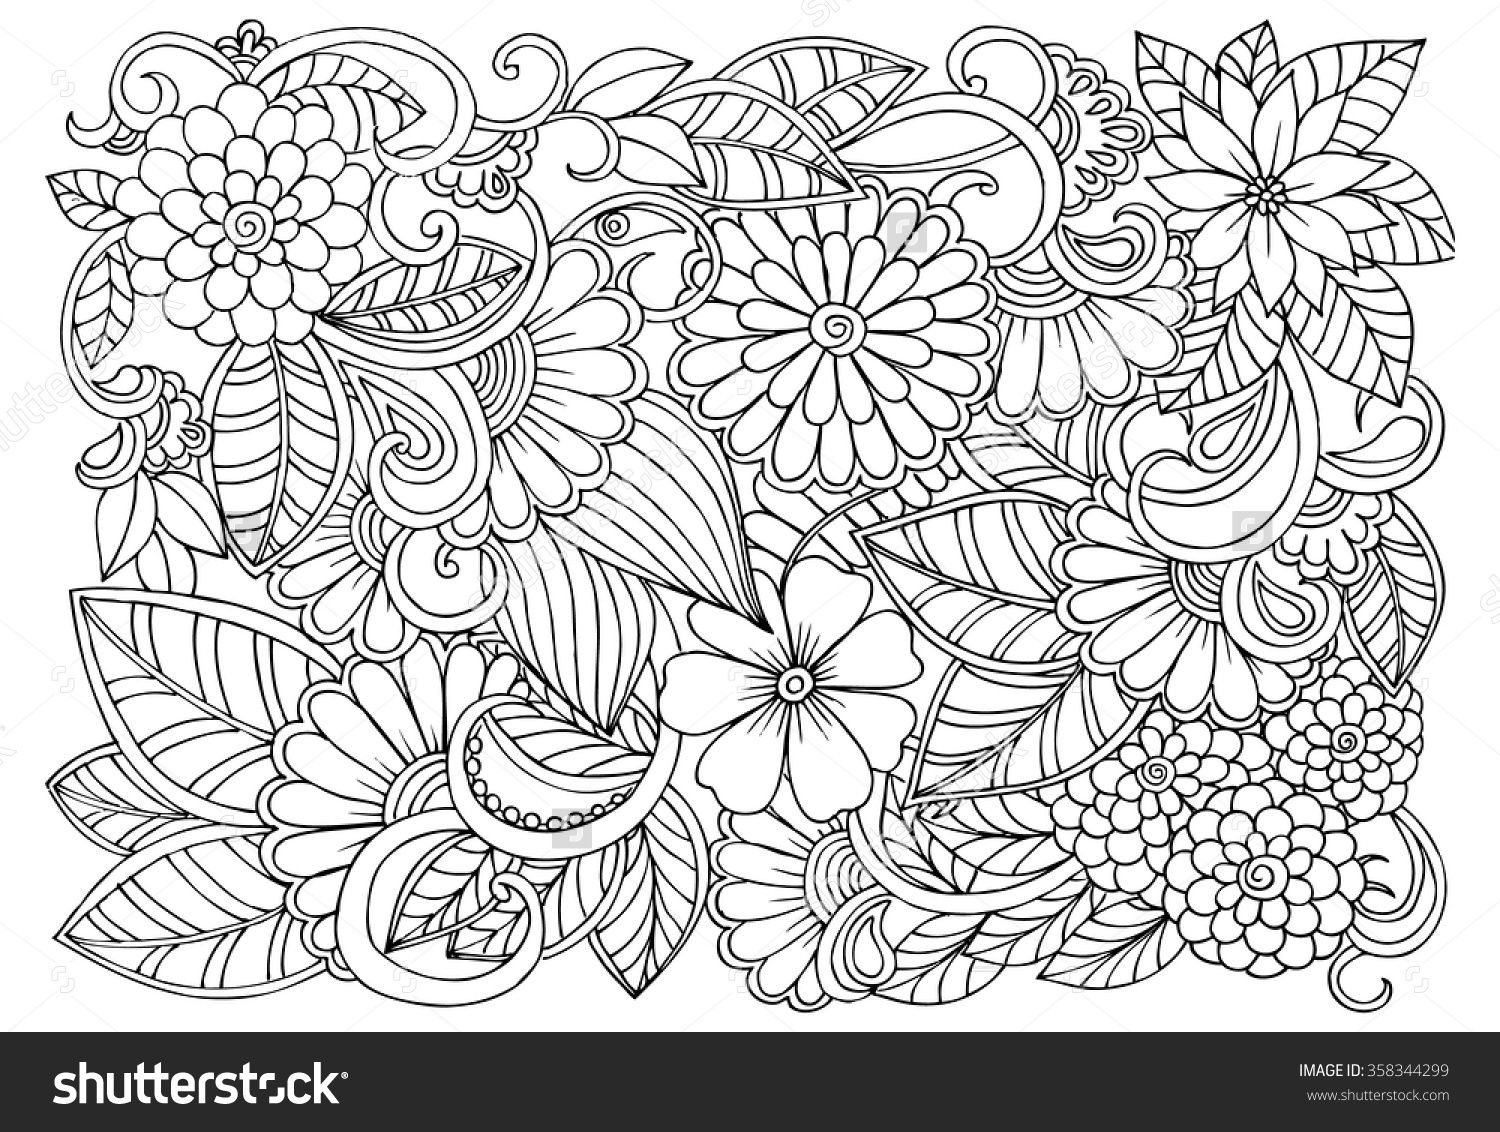 Coloring Pages Of Flower Designs With Flower Designs Coloring Pages Doodle Floral Pattern In ...